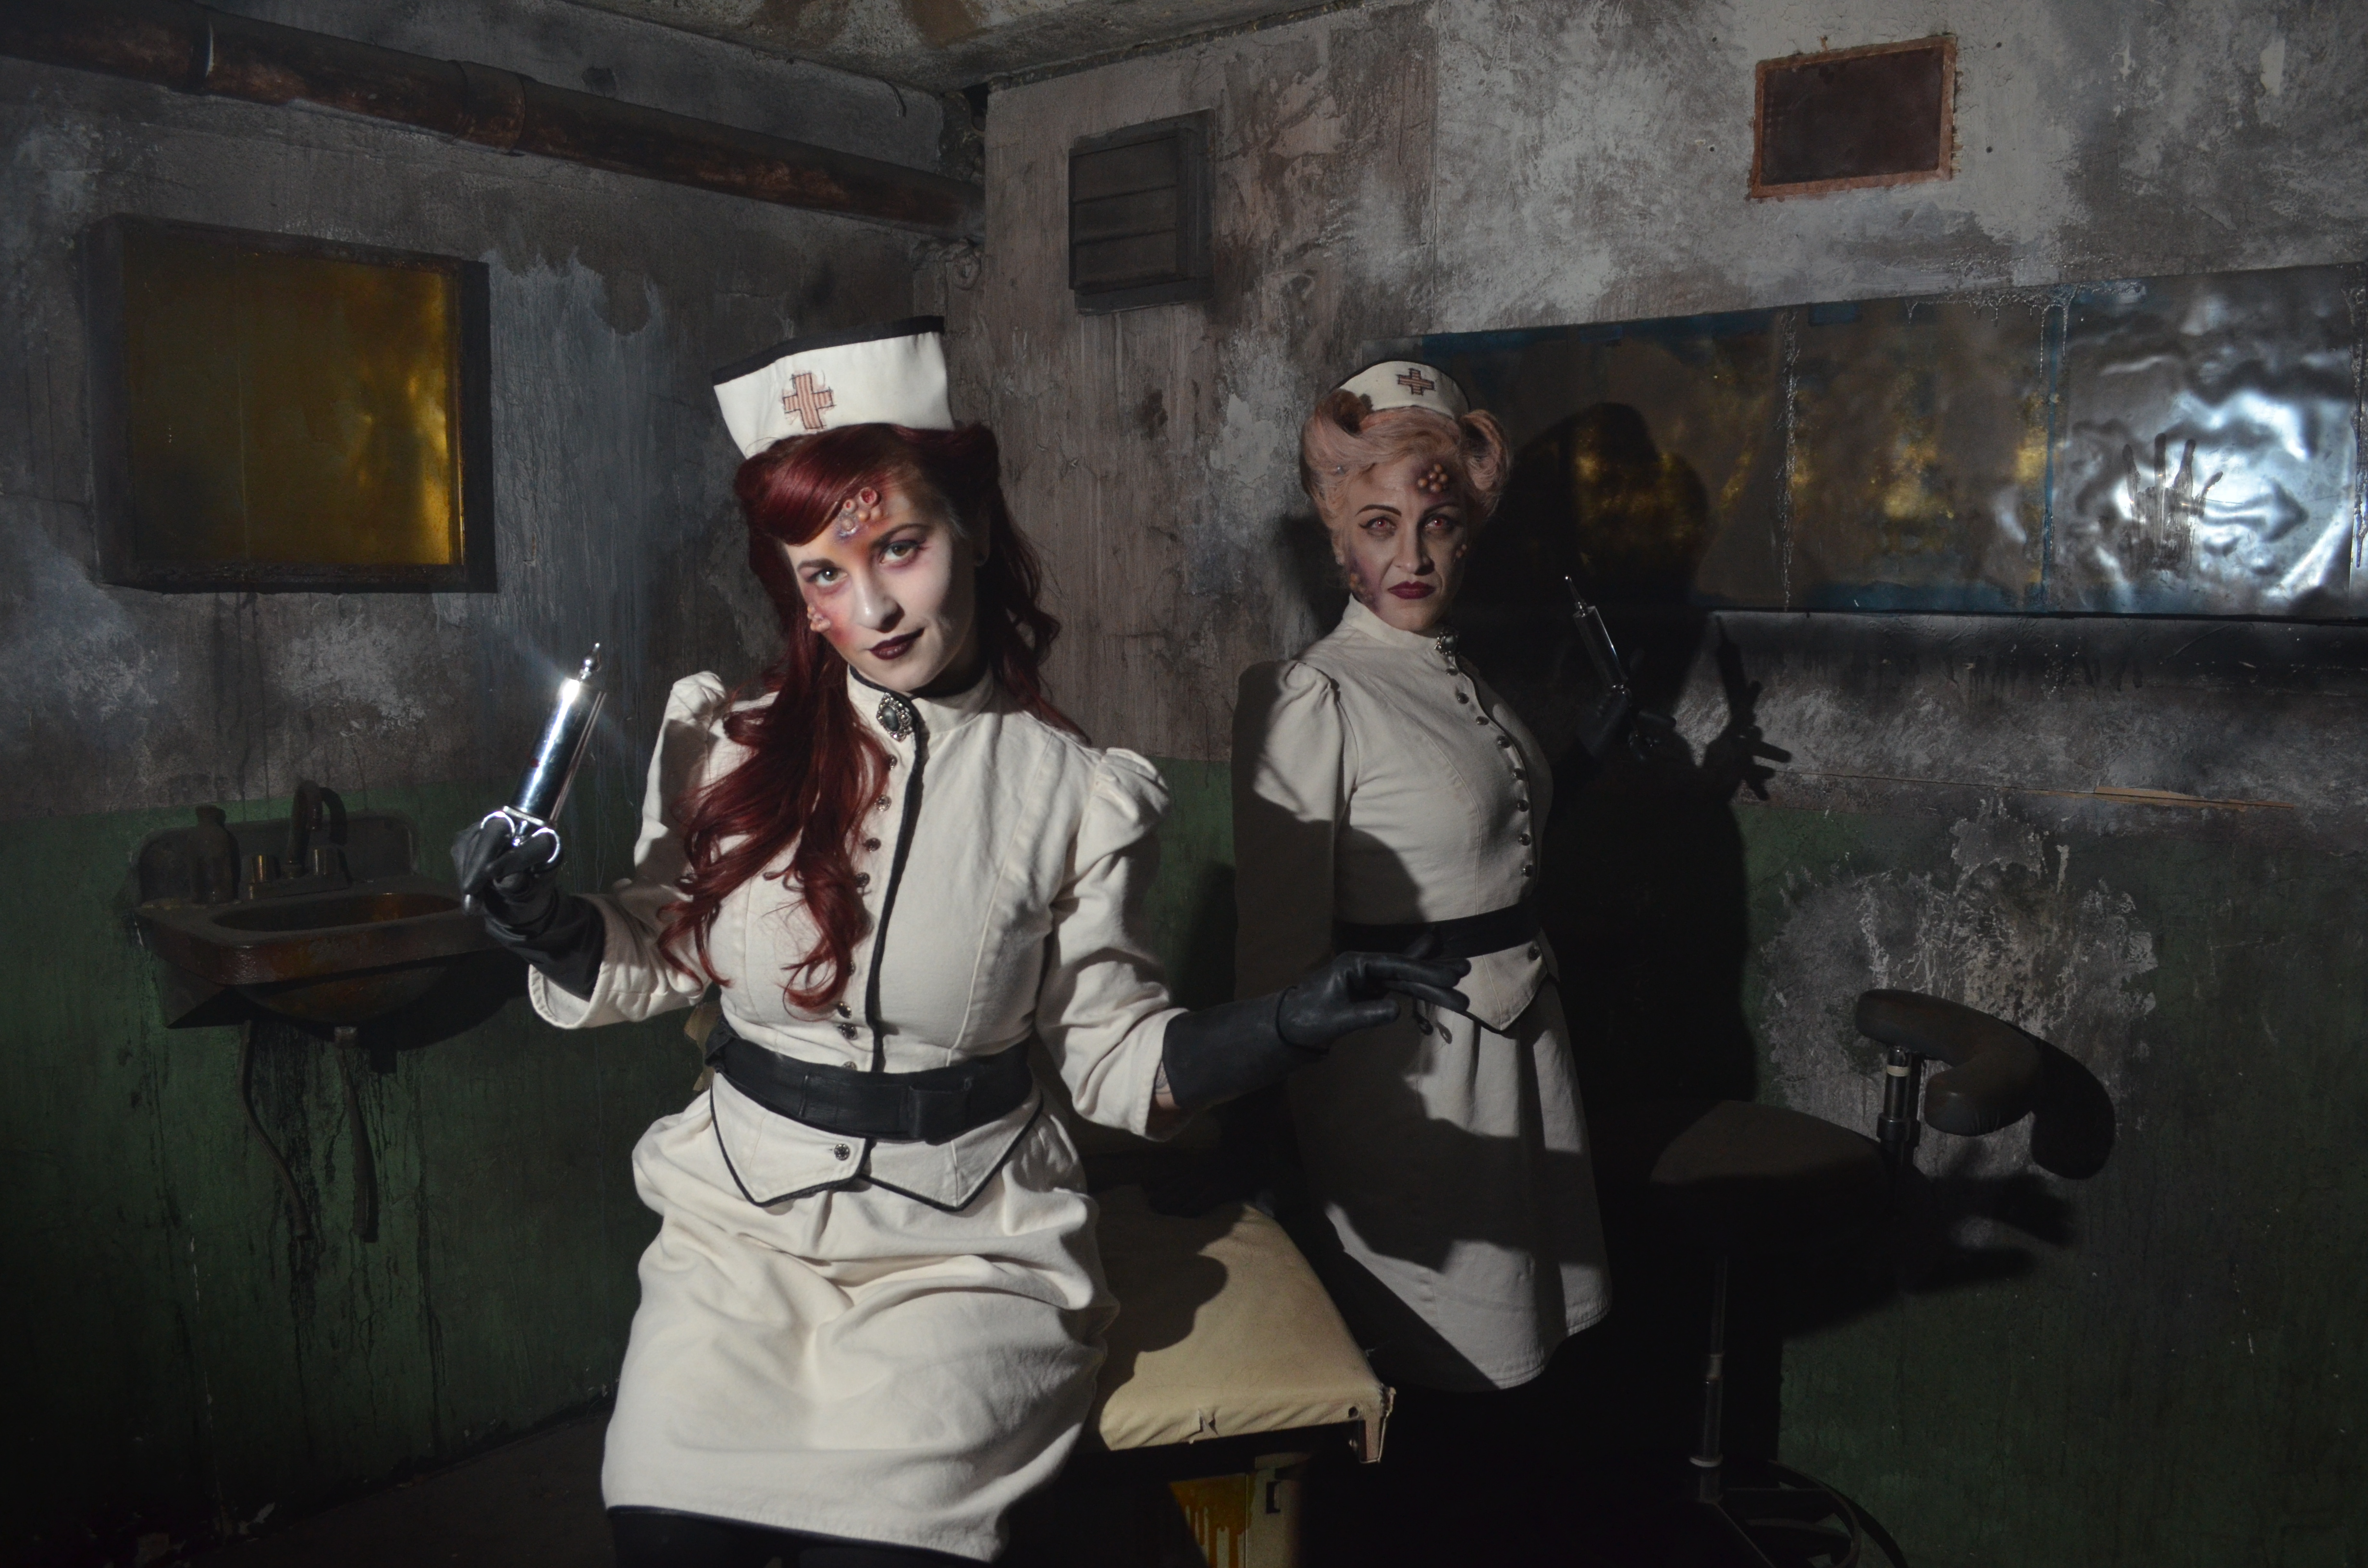 CREDIT: Terror Behind the Walls at Eastern State Penitentiary